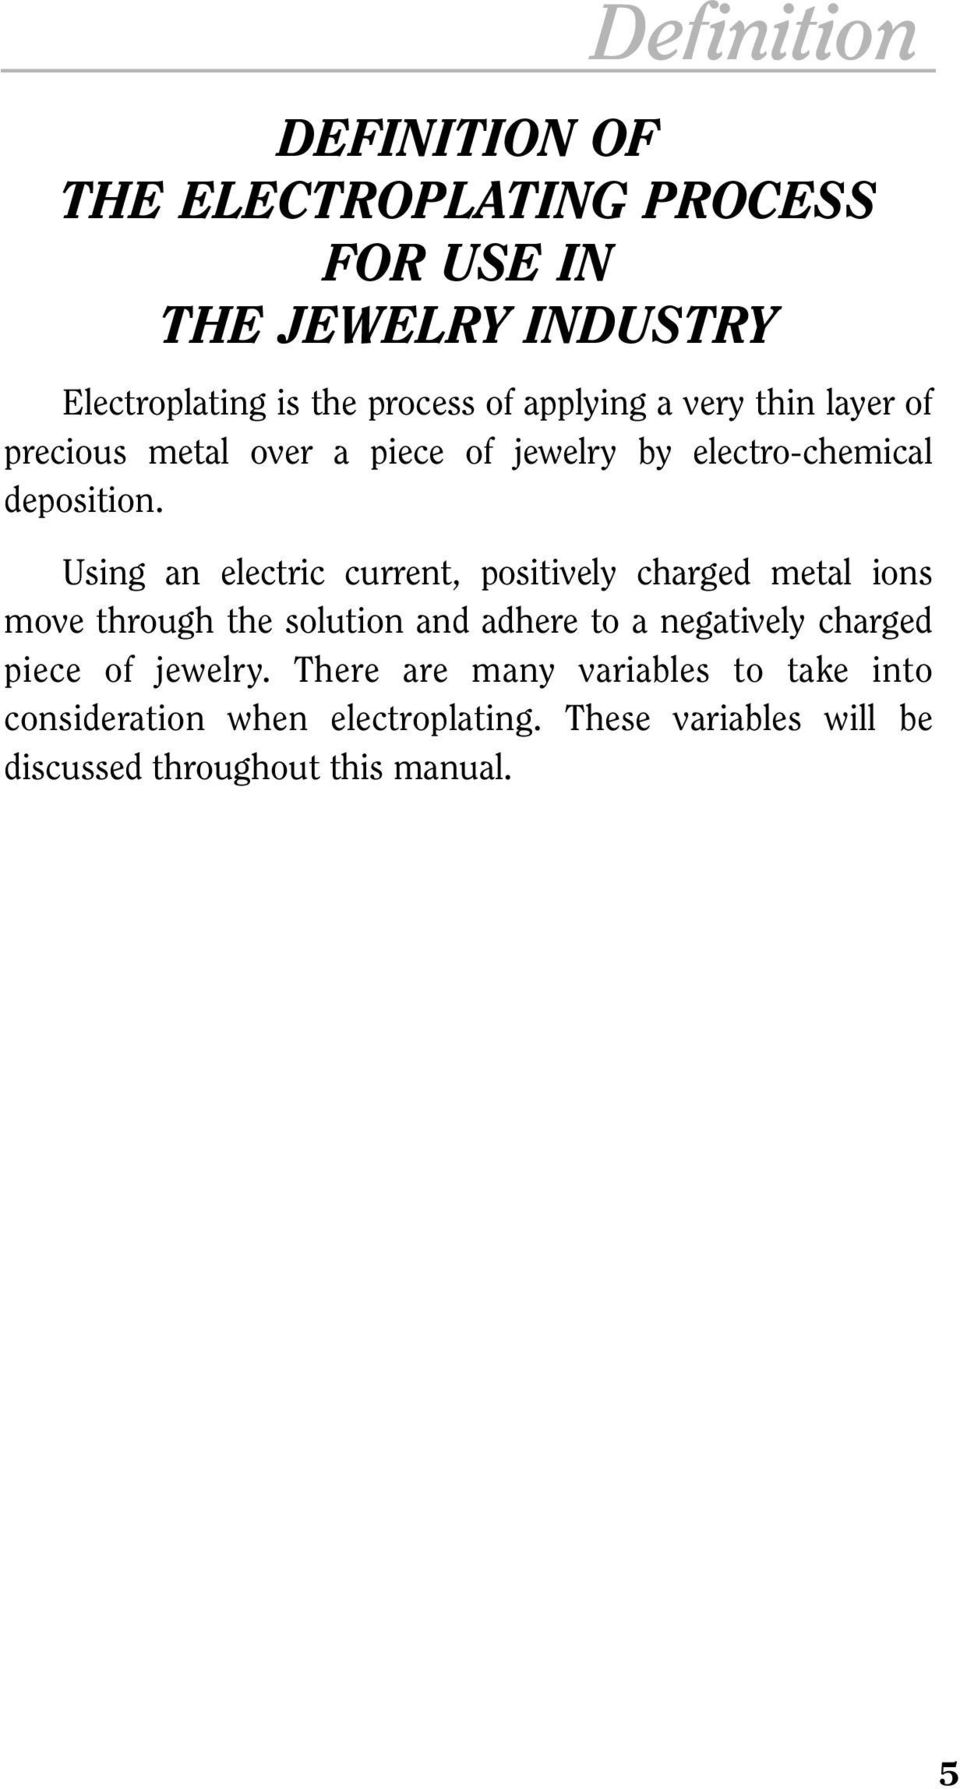 Table Of Contents Super Hard Cyanide Free Diy Circuit Boards Using Photo Etch Process7 Construction An Electric Current Positively Charged Metal Ions Move Through The Solution And Adhere To